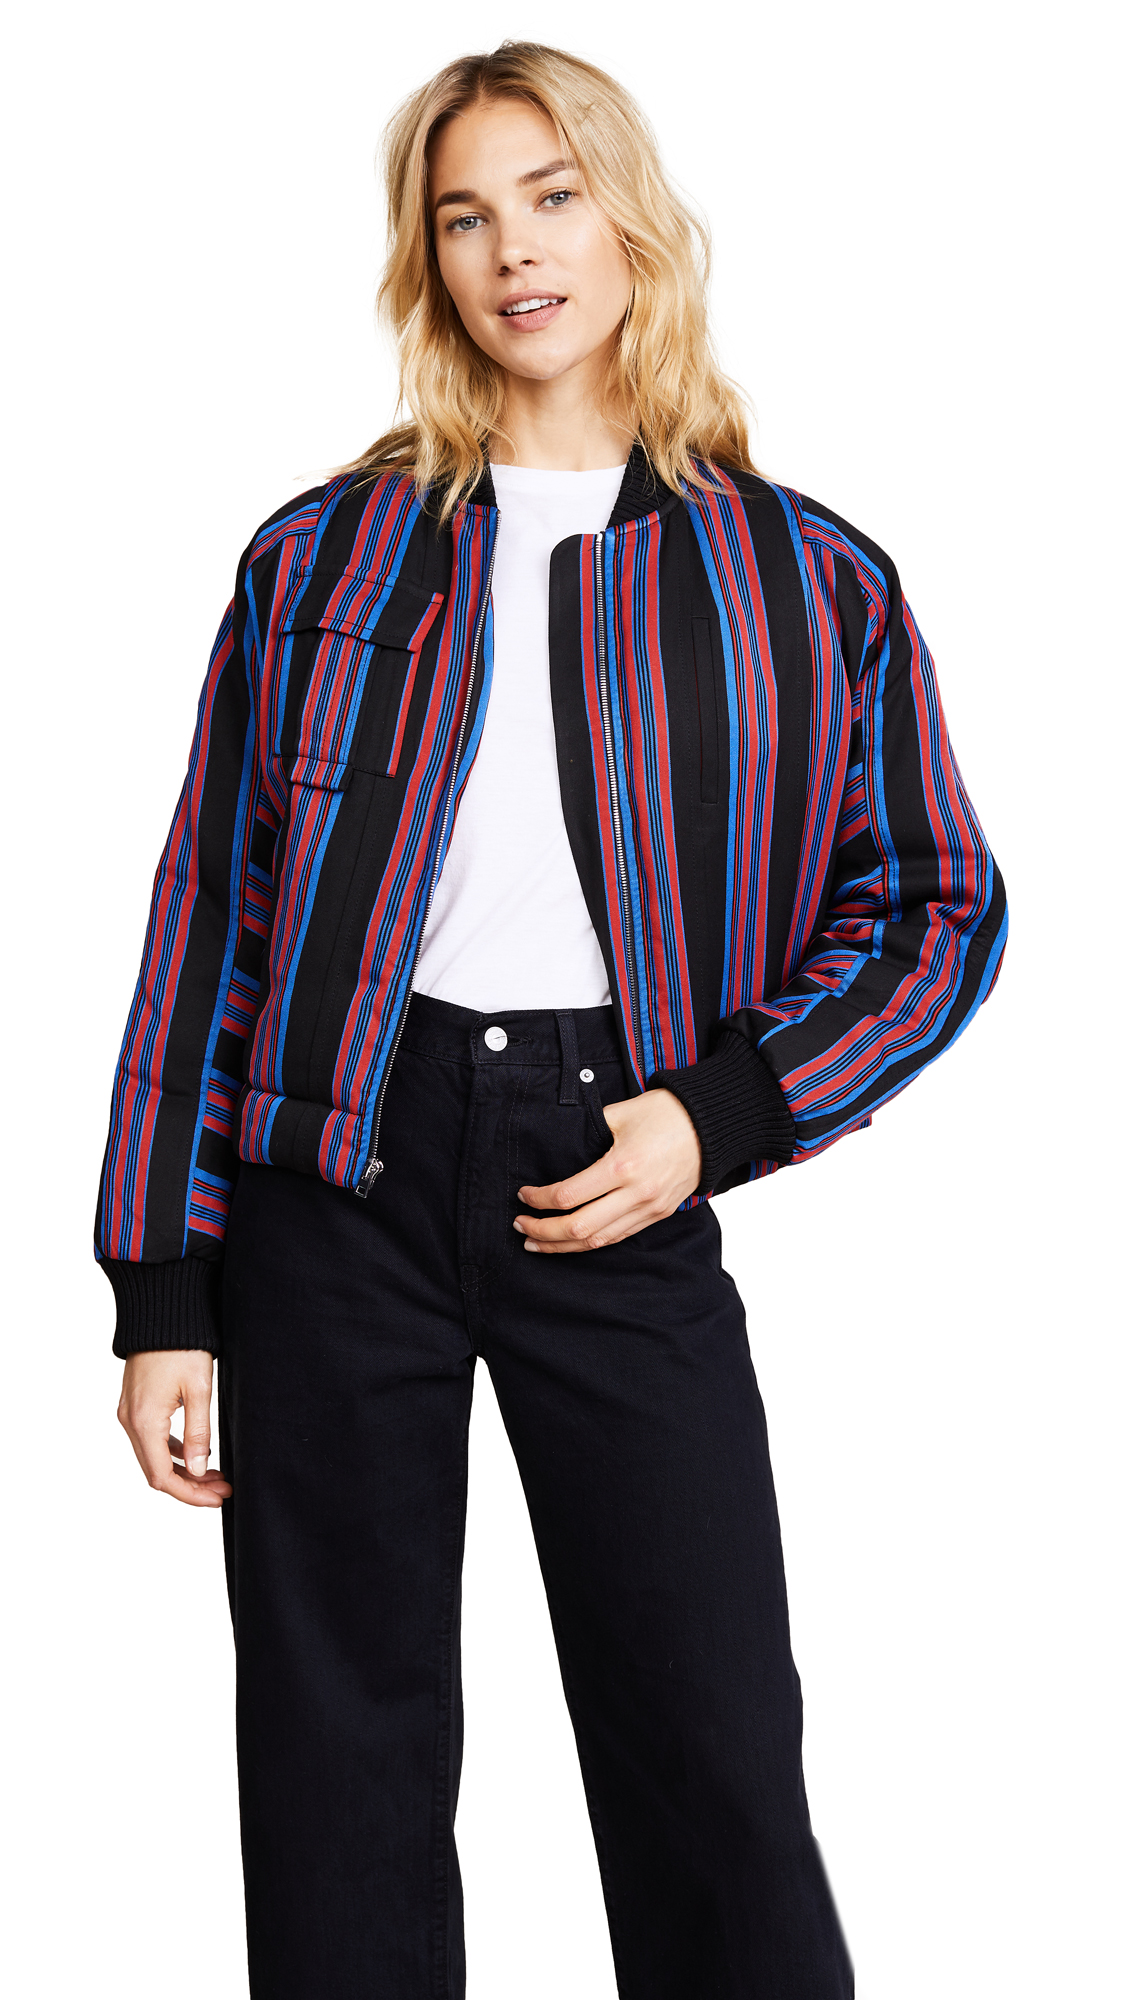 Diane von Furstenberg Bomber Jacket - Black/Royal/Bright Red